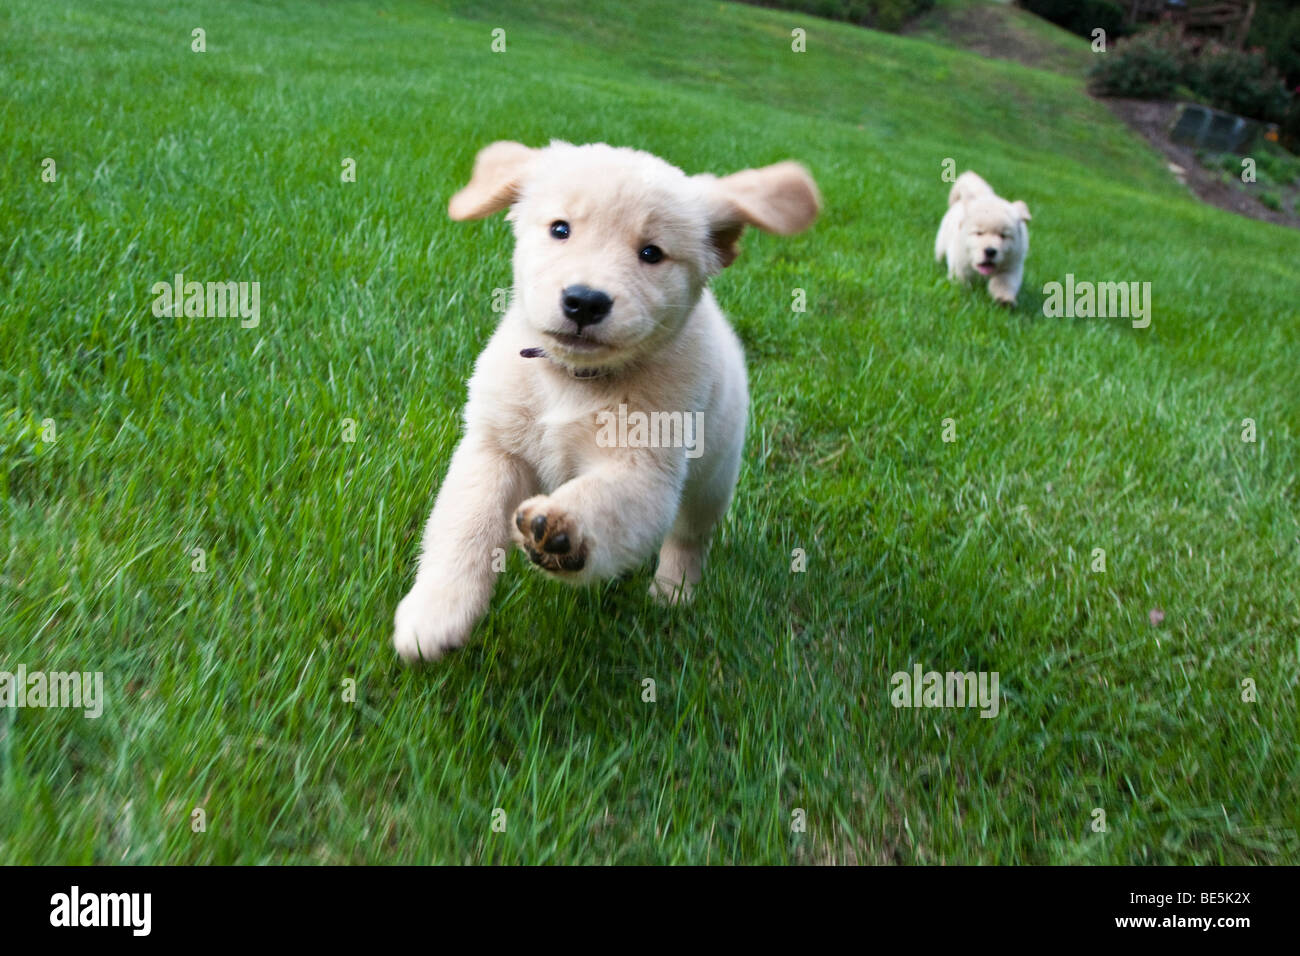 Eight week old Golden Retriever puppies running on the grass. - Stock Image